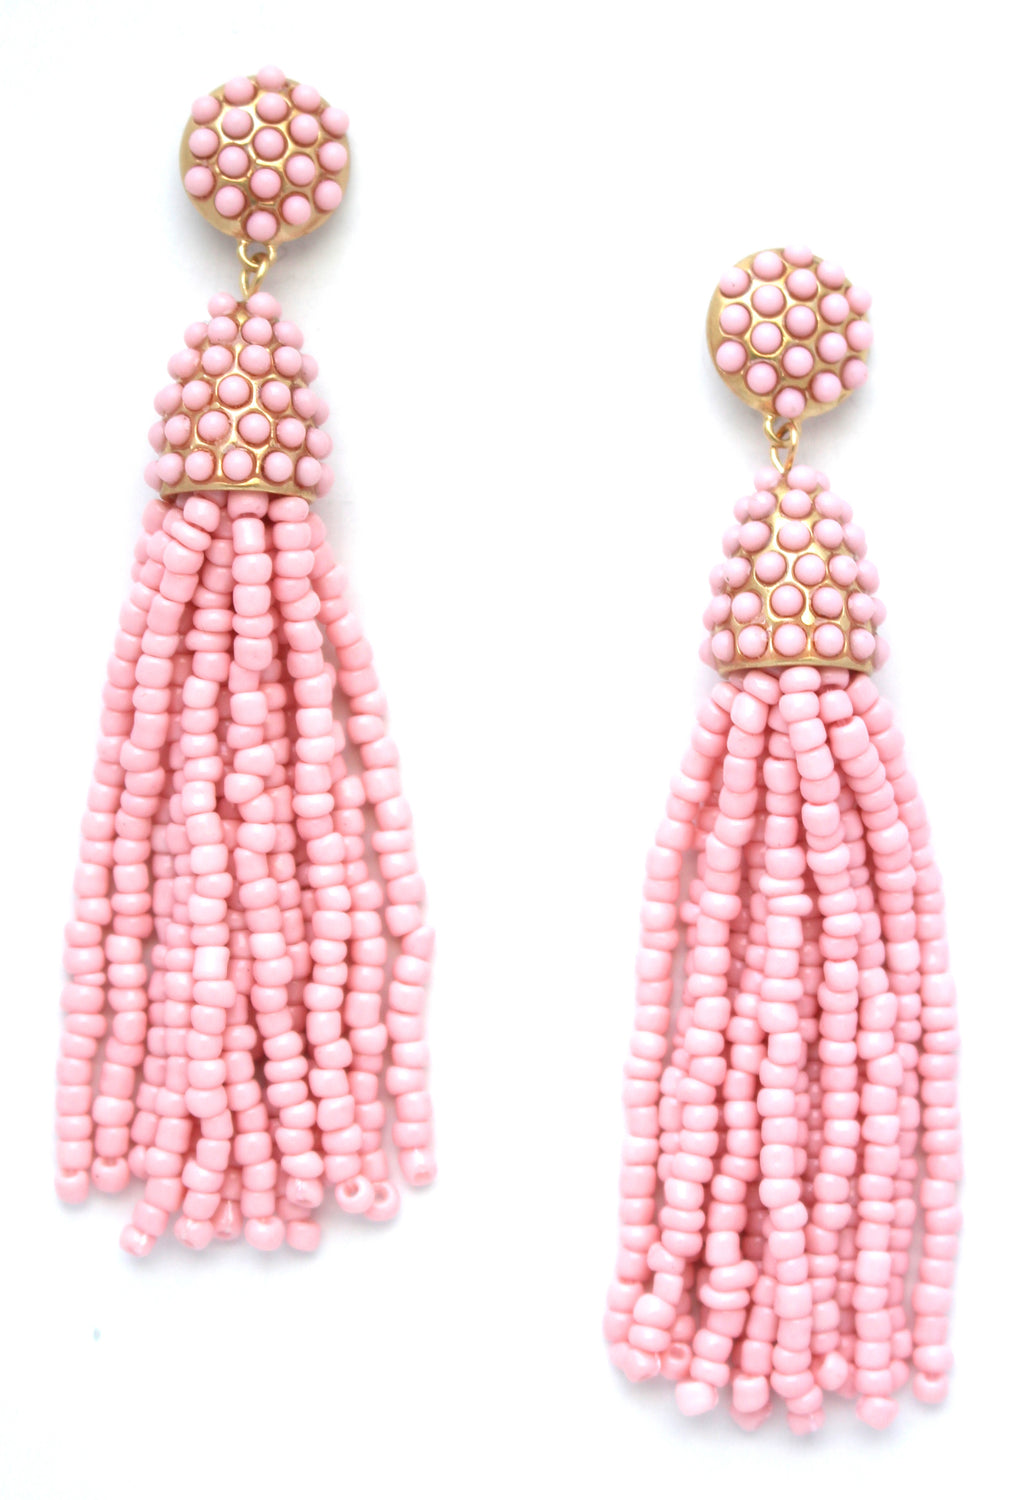 Victoria Joy Tassel Earrings- Light Pink